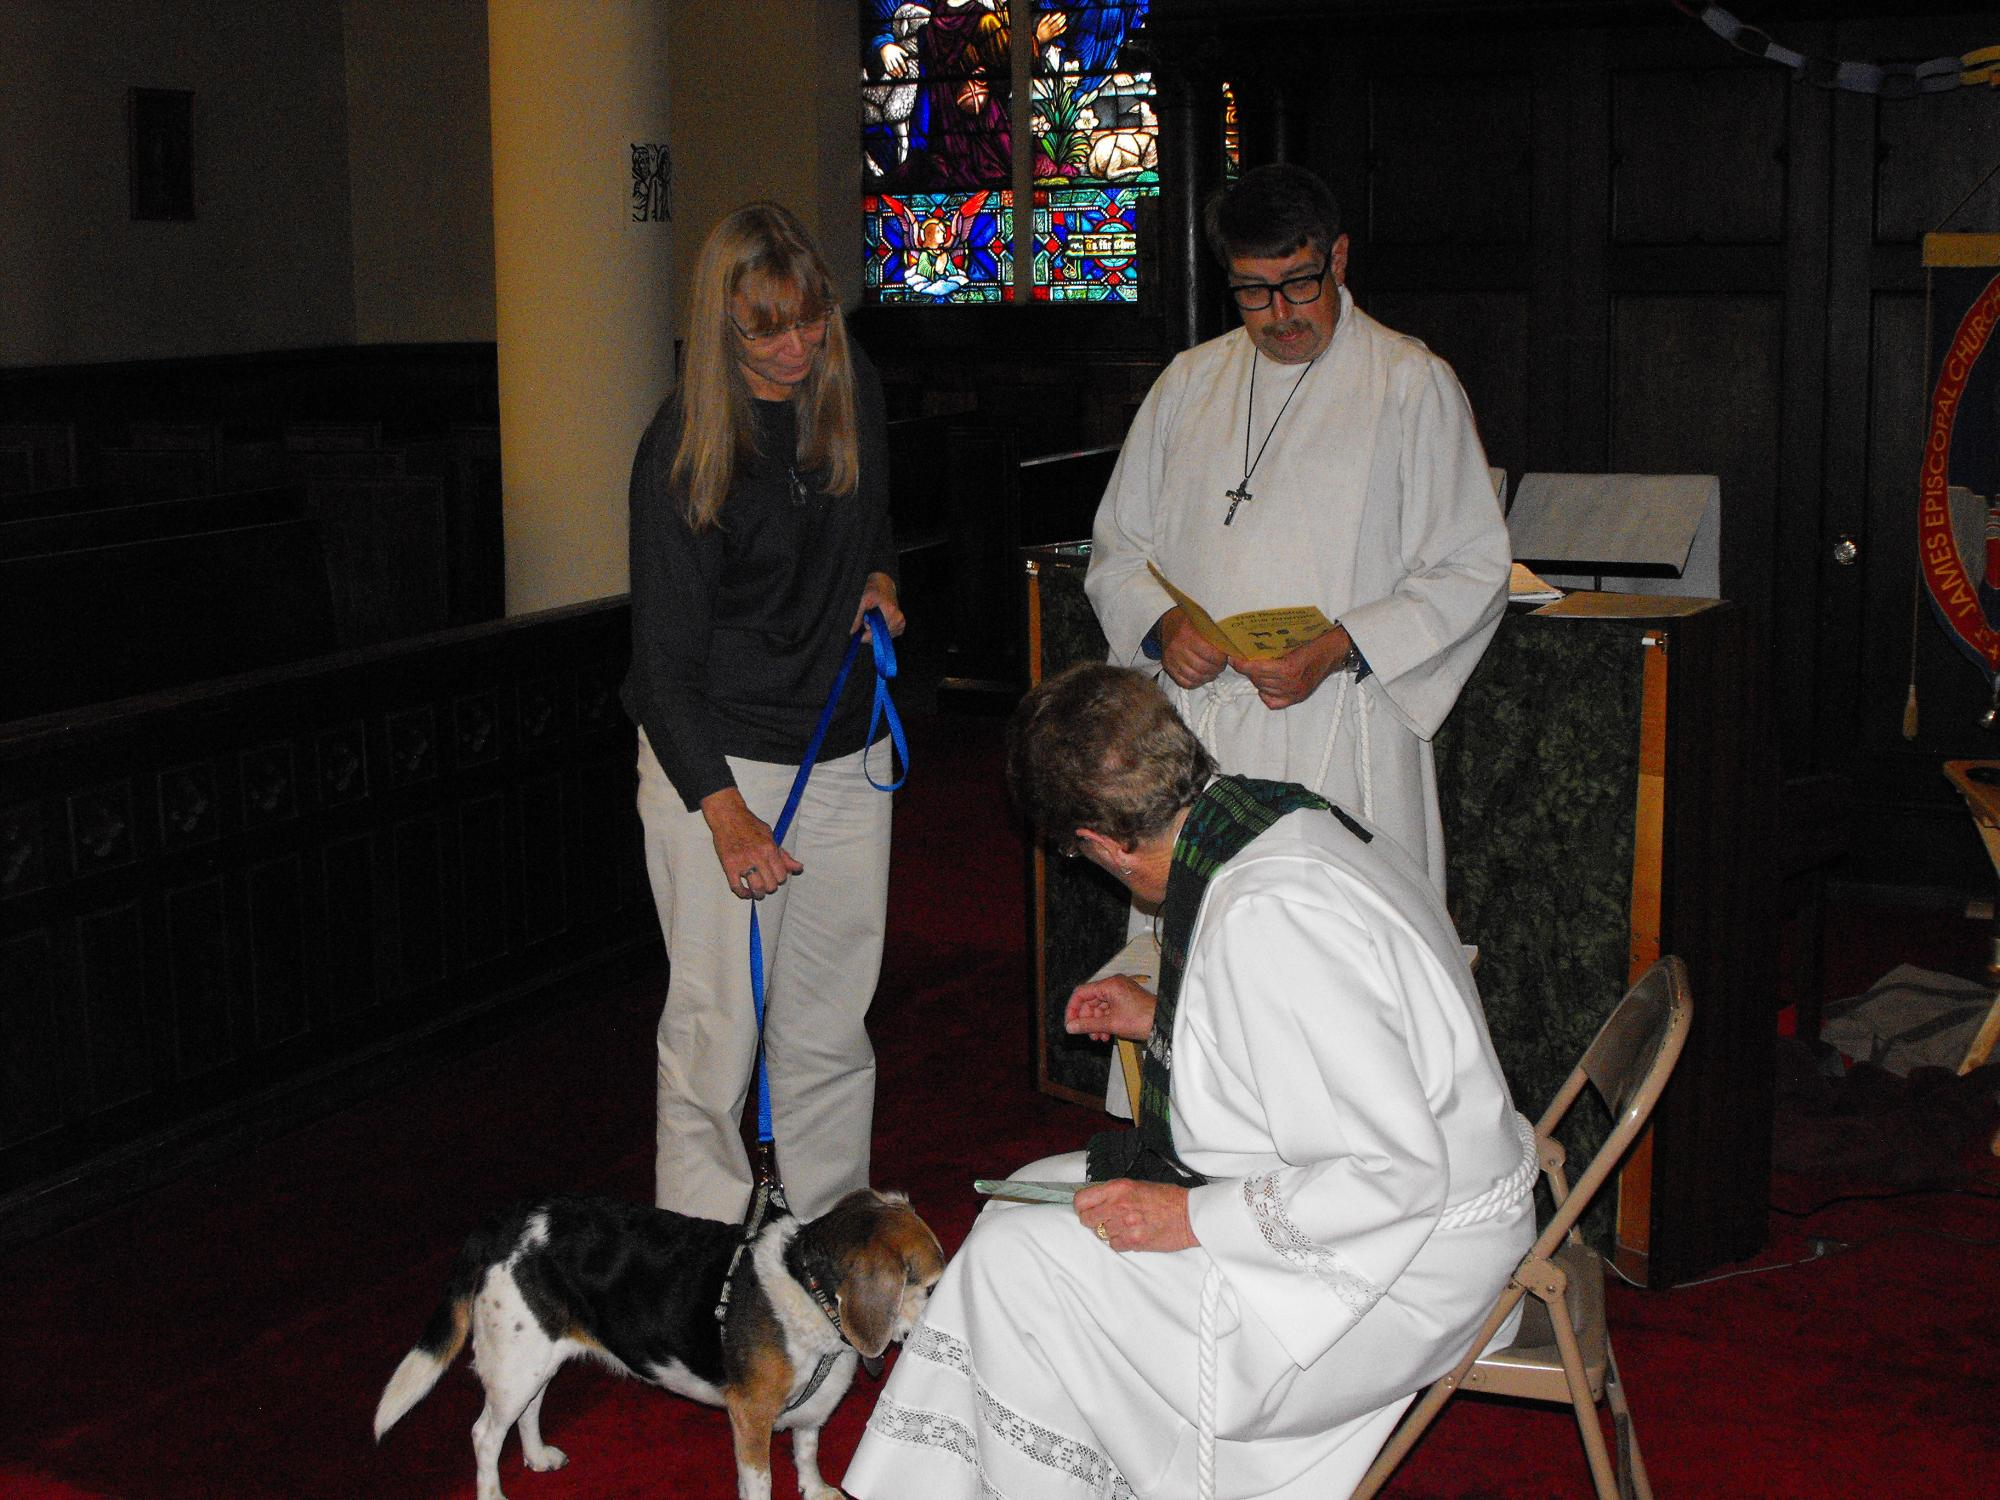 Blessing_of_the_Animals_10-4-16715.JPG